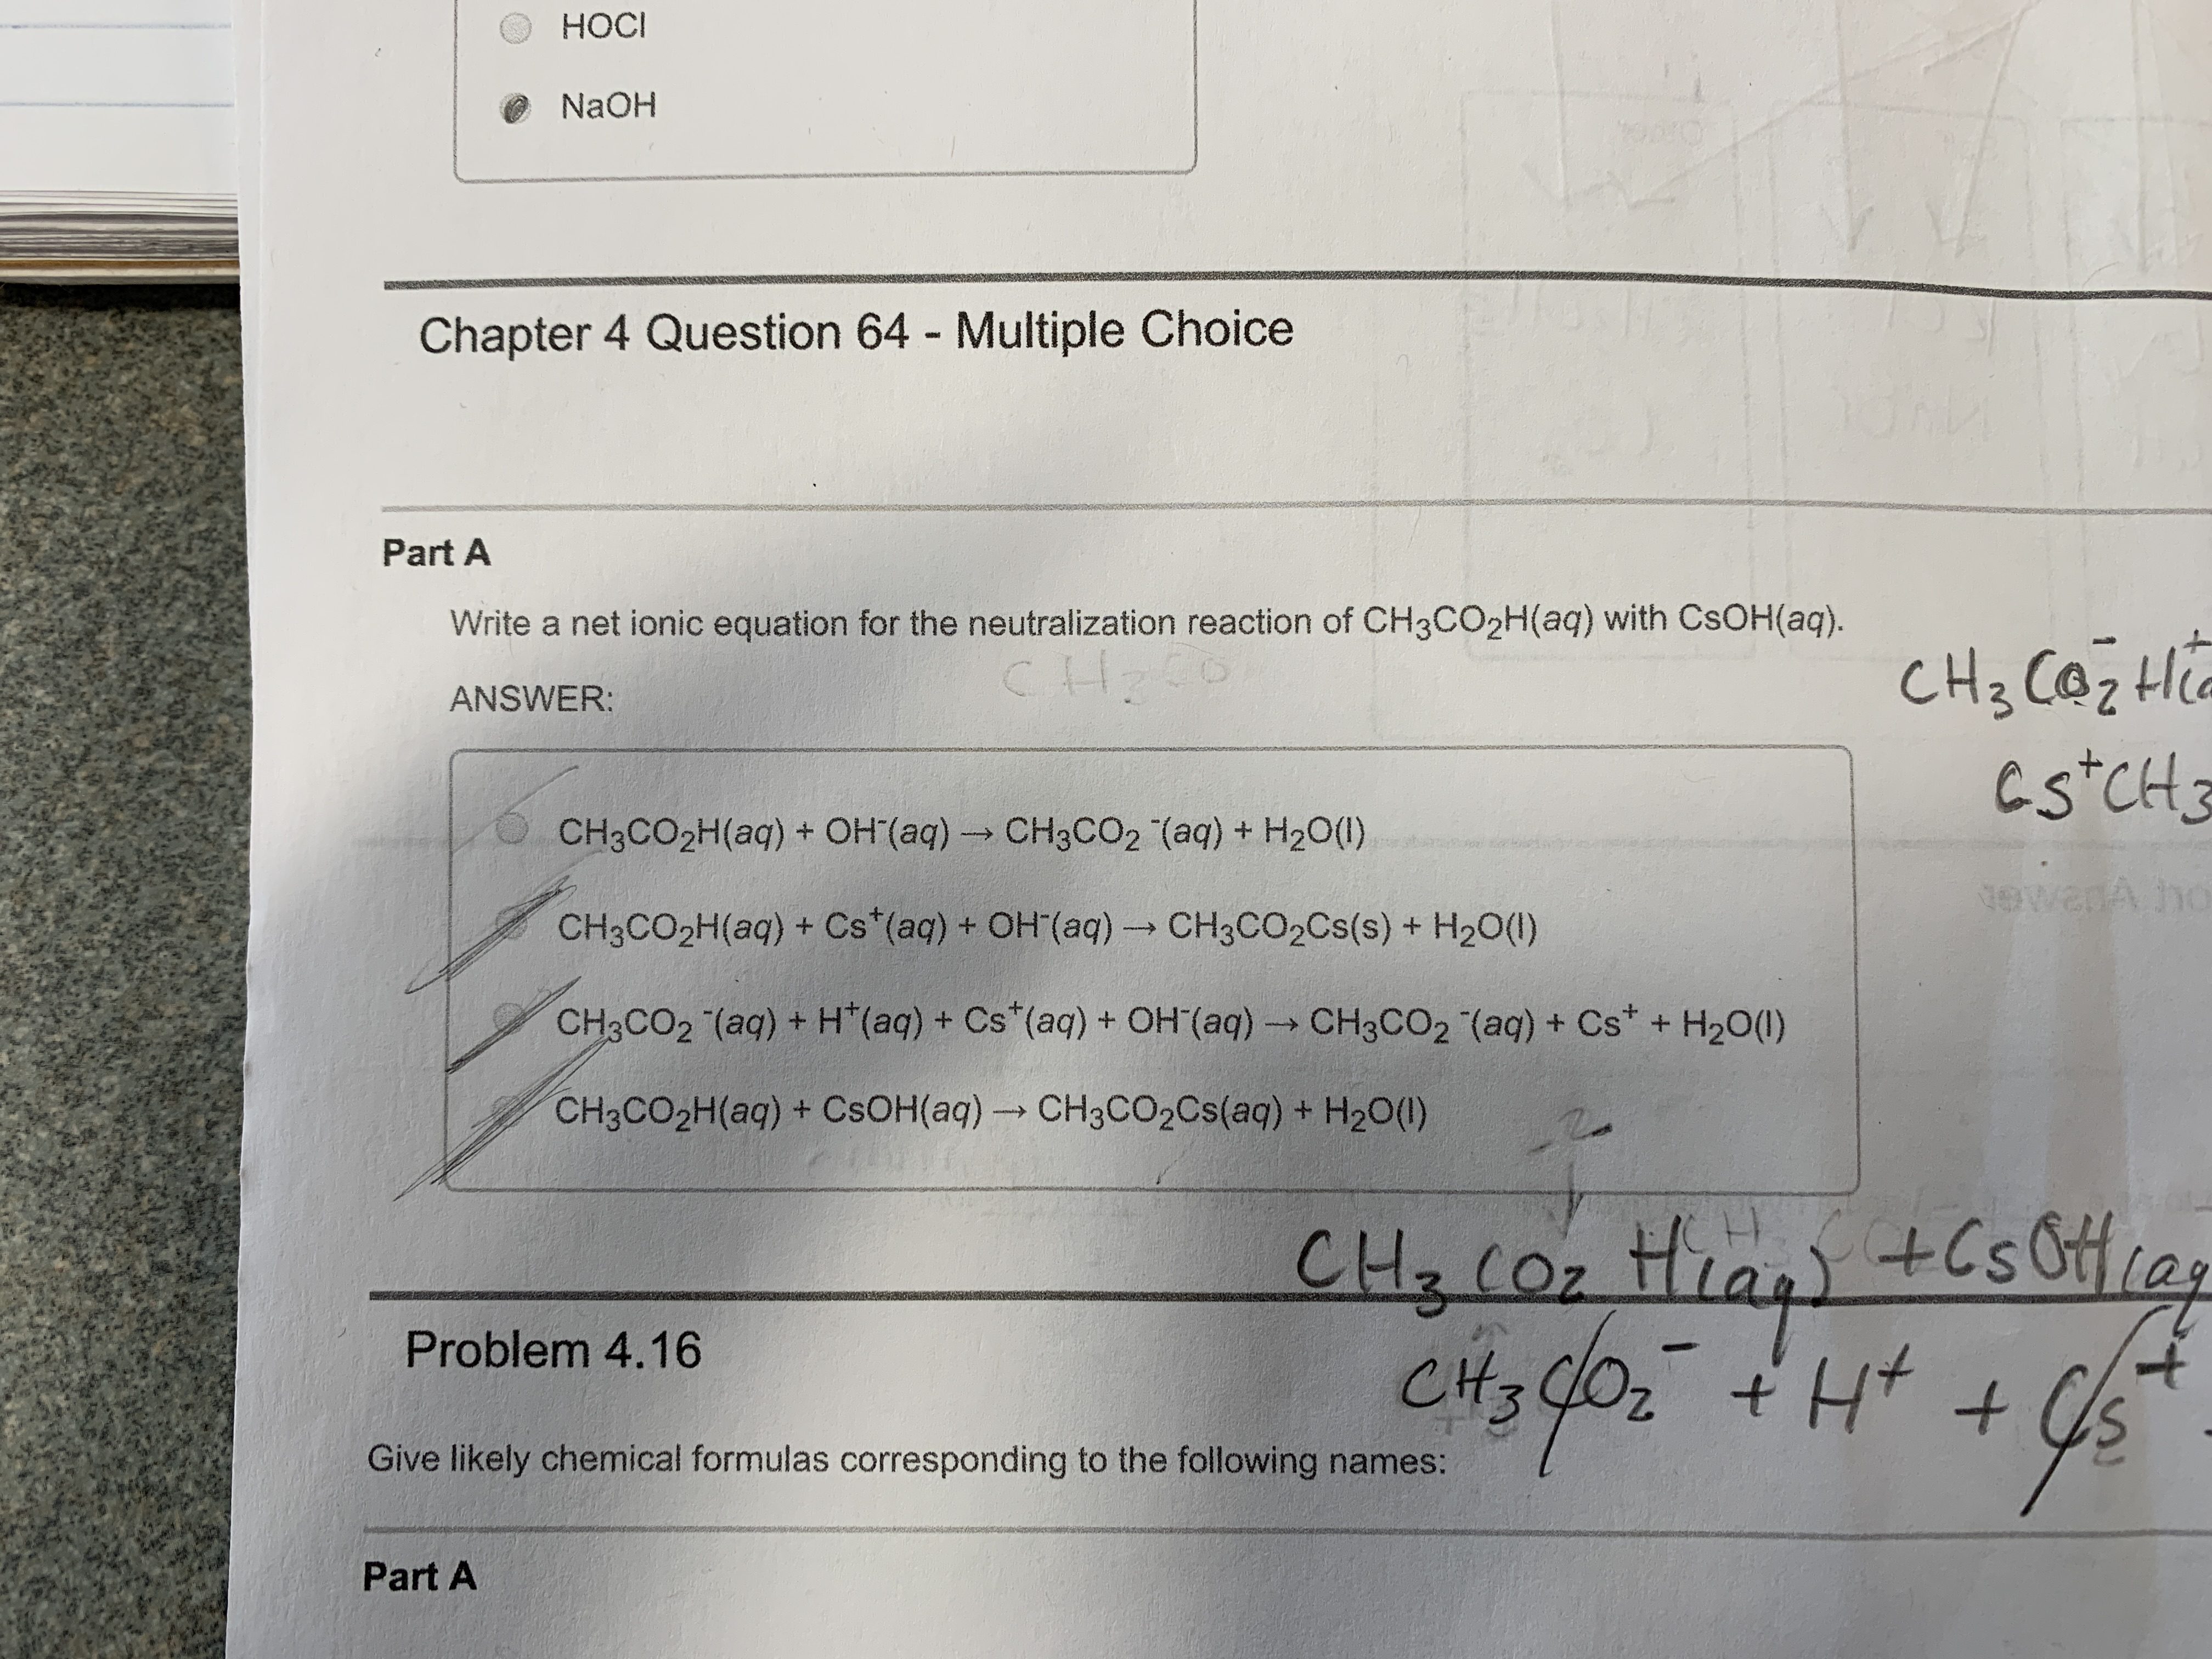 HOCI НОСI NAOH Chapter 4 Question 64 - Multiple Choice Part A Write a net ionic equation for the neutralization reaction of CH3CO2H(aq) with CSOH(aq) CL CH3 CazH Cs CH ANSWER: CH3CO2H(aq) + OH (aq) CH3CO2 (aq) + H20() mache tewanA ho CH3CO2H(aq) + Cs (aq) + OH(aq)- CH3CO2CS(s) + H20(1) CH3CO2 (aq) + H (aq) + Cs (aq) + OH (aq) CH3CO2 (aq) + Cs+ H20() CH3CO2H(aq) + CSOH(aq) CH3CCO2CS(aq) + H20() +CsOias CH Coz t CH3 Problem 4.16 Give likely chemical formulas corresponding to the following names: AHp Part A